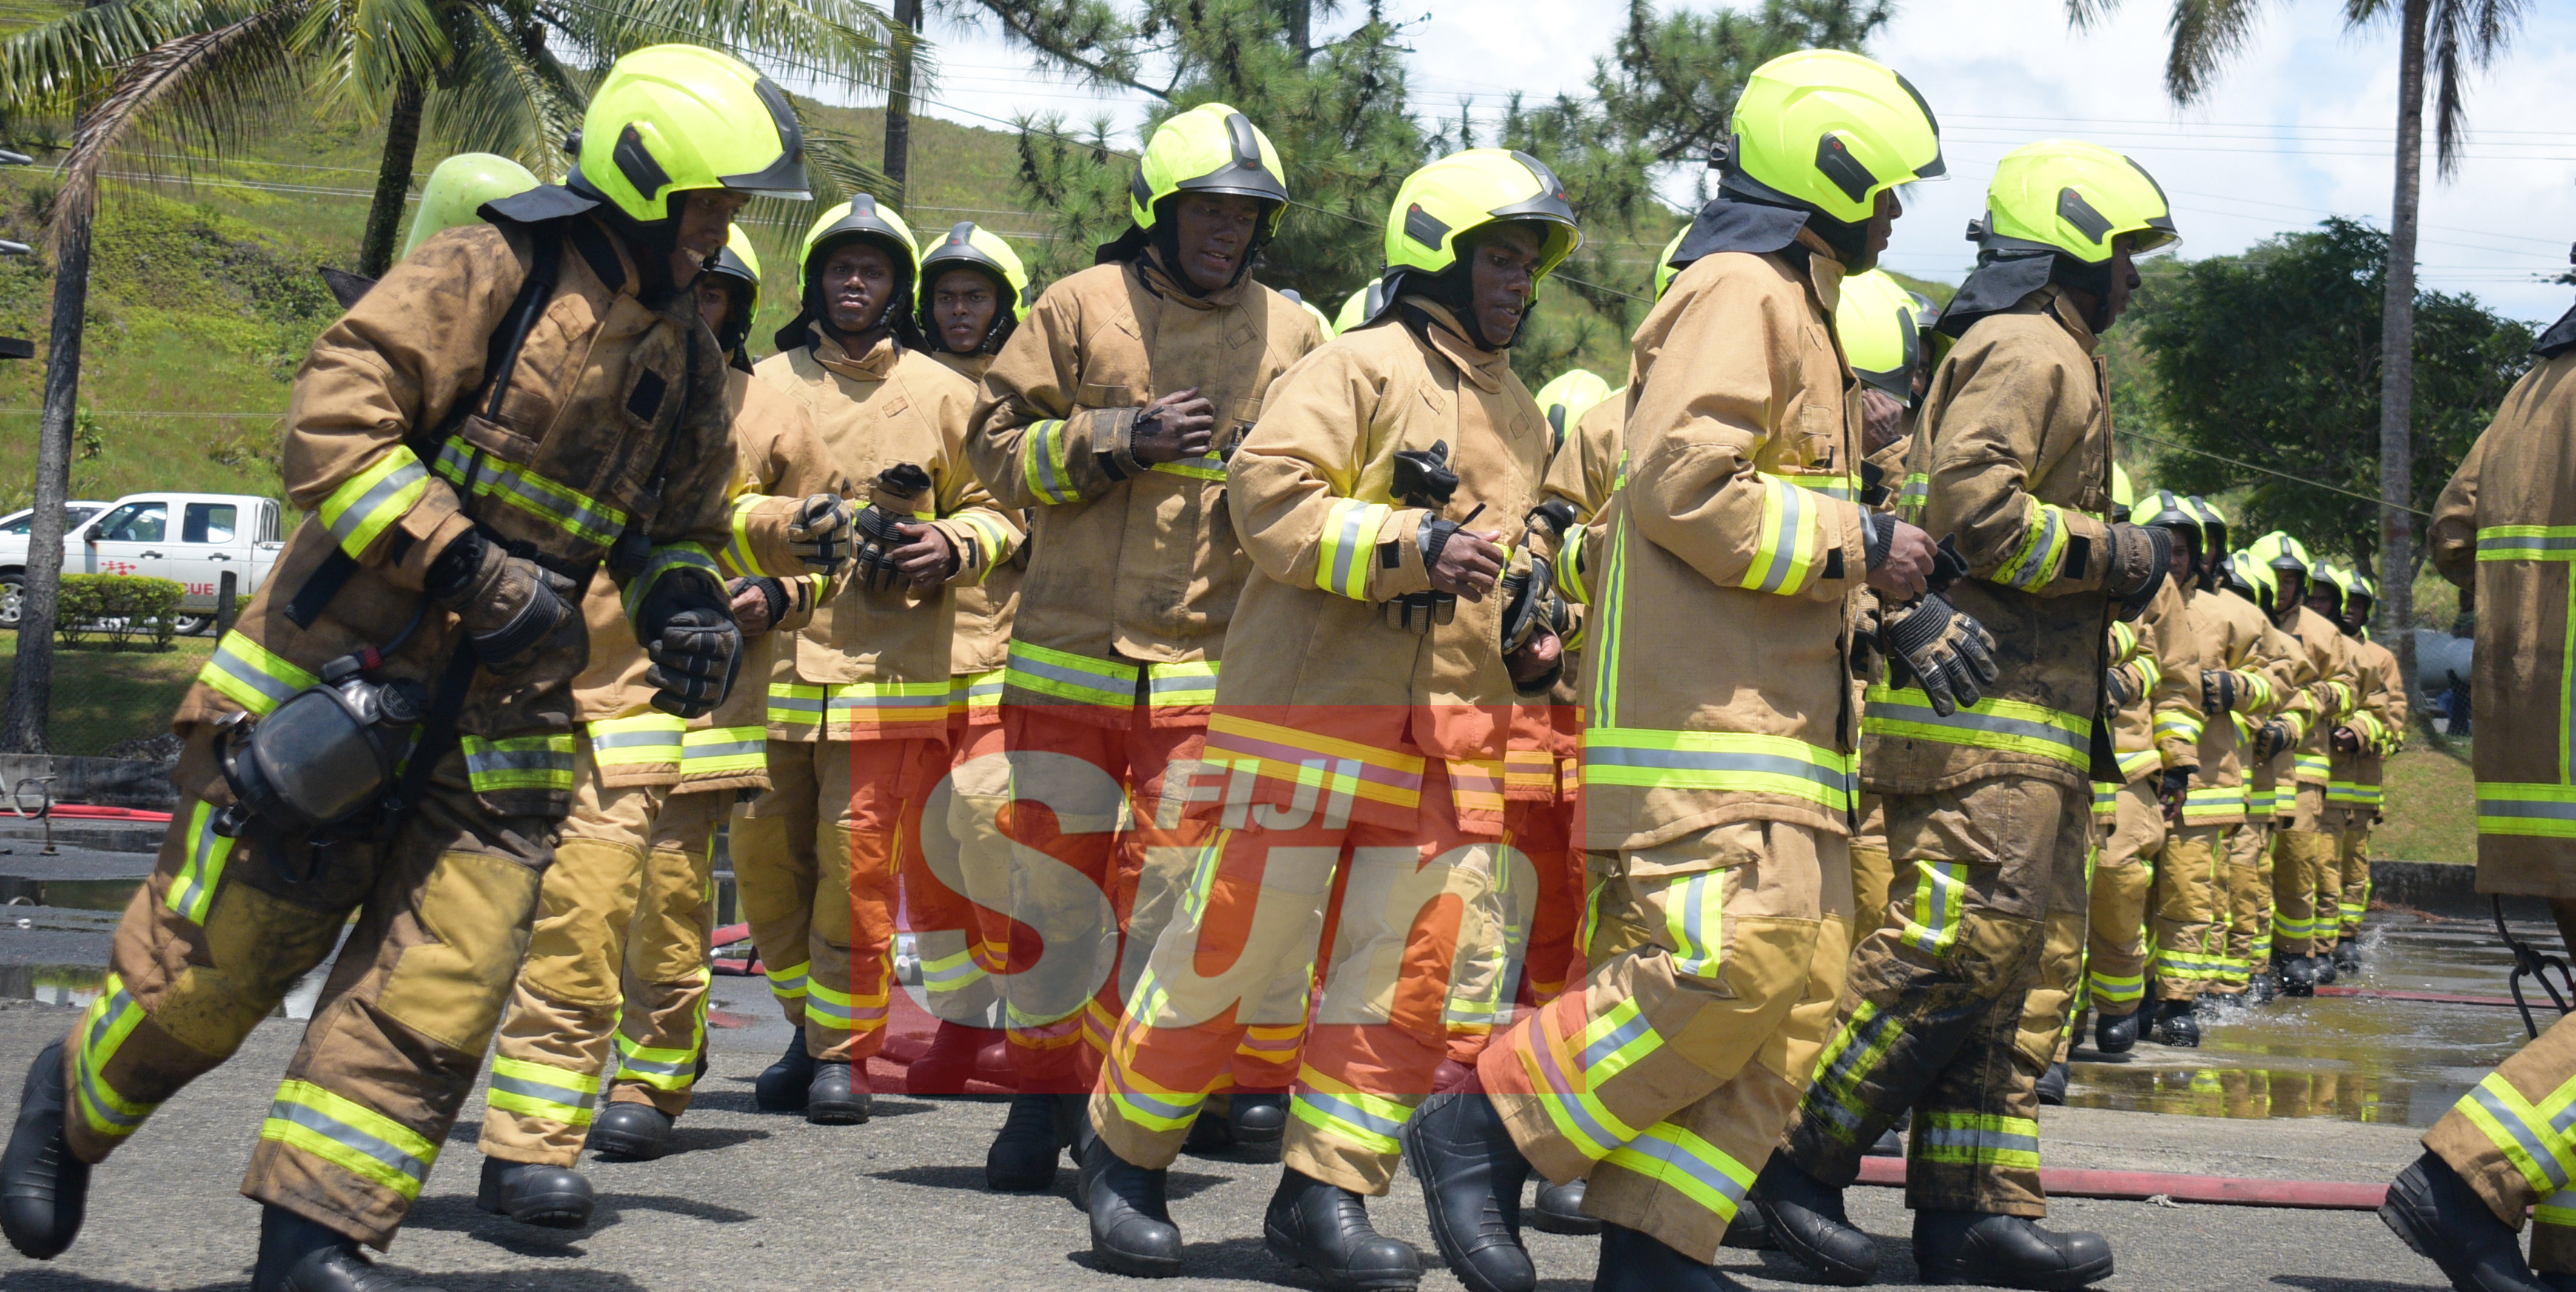 New National Fire Authority recruits display their skills during their pass out parade at Navy Training base in  Togalevu Veisari, Lami on December 11, 2019. Photo: Ronald Kumar.